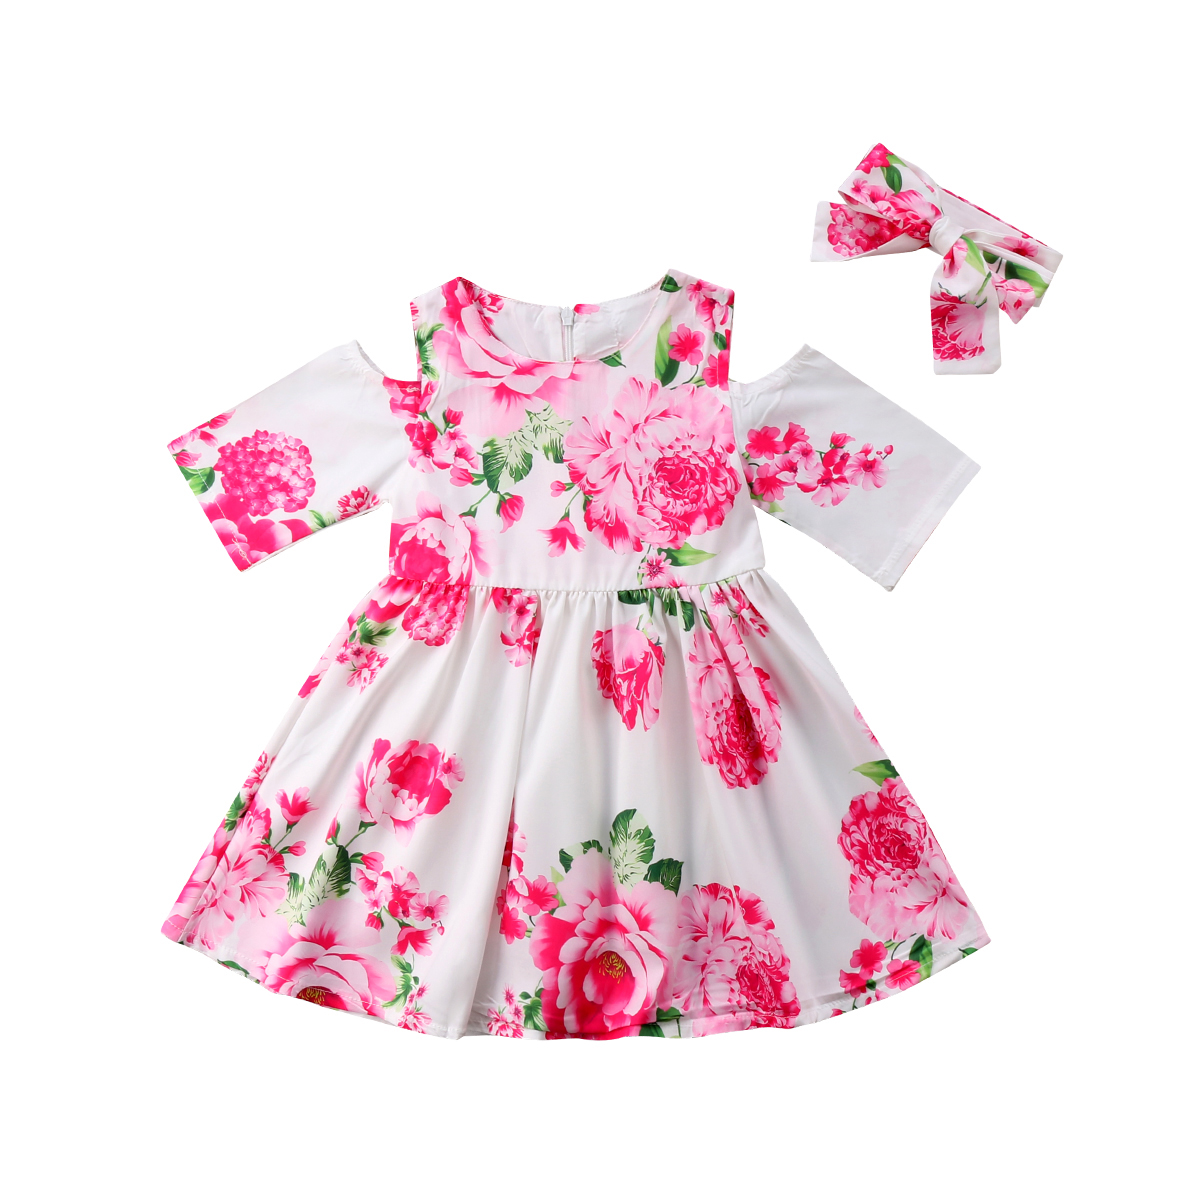 Toddler Kids Baby Girls Dress Cold Shoulder Summer Short Sleeve Floral Party Pageant Dresses Girl Clothing Sundress Clothes faber orizzonte eg8 x a 60 active